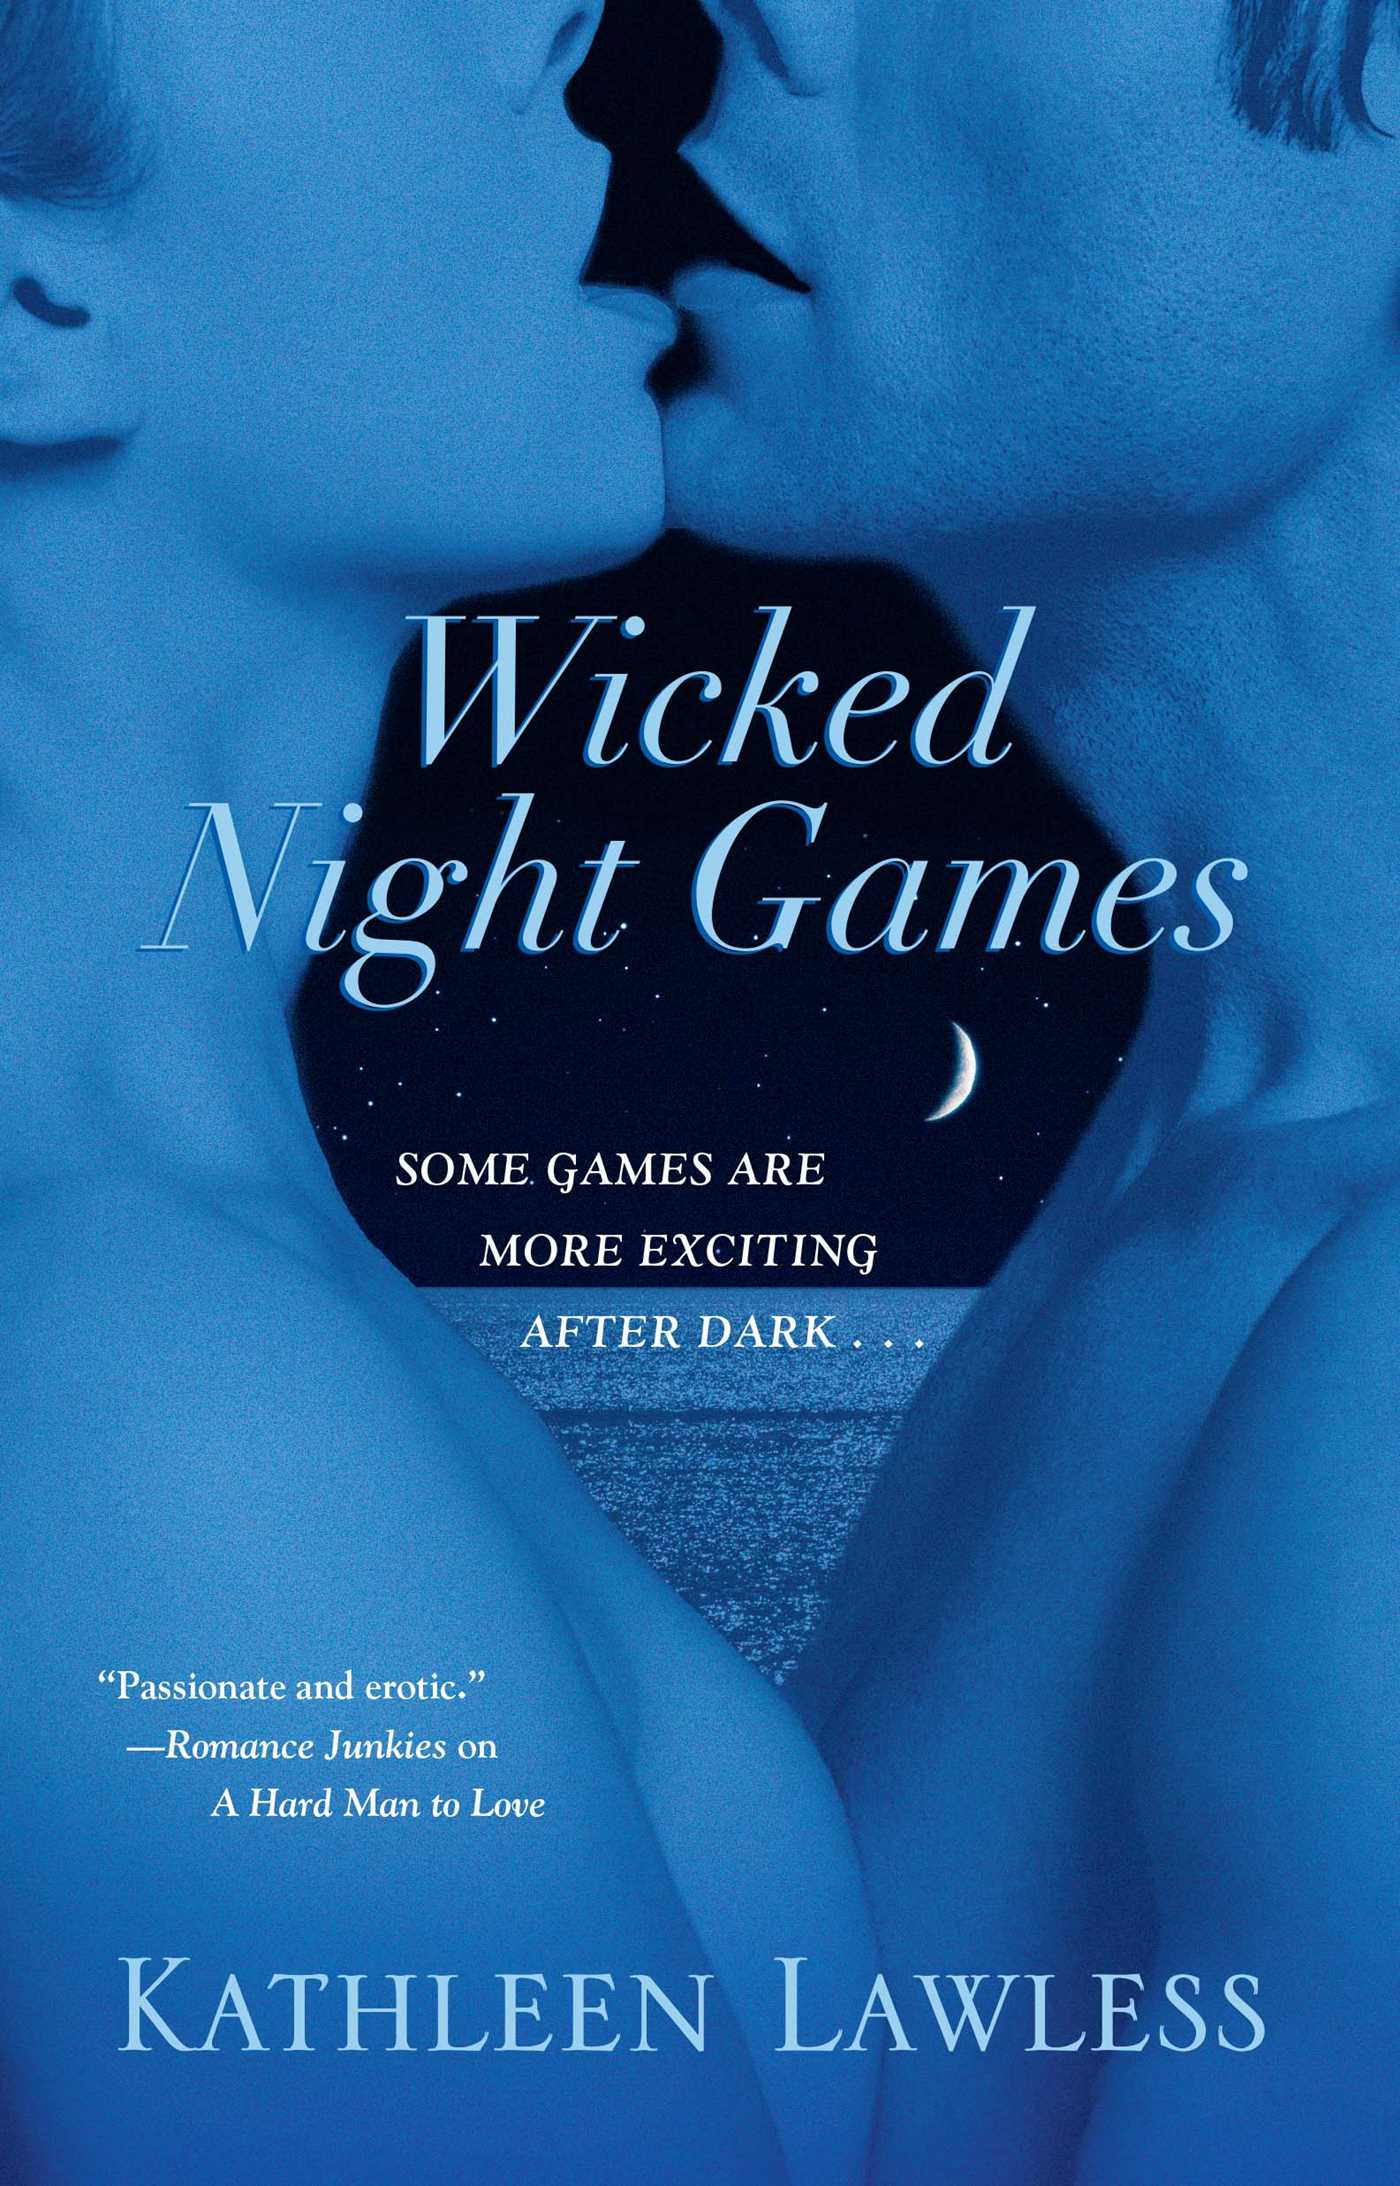 Wicked night games 9781416532736 hr